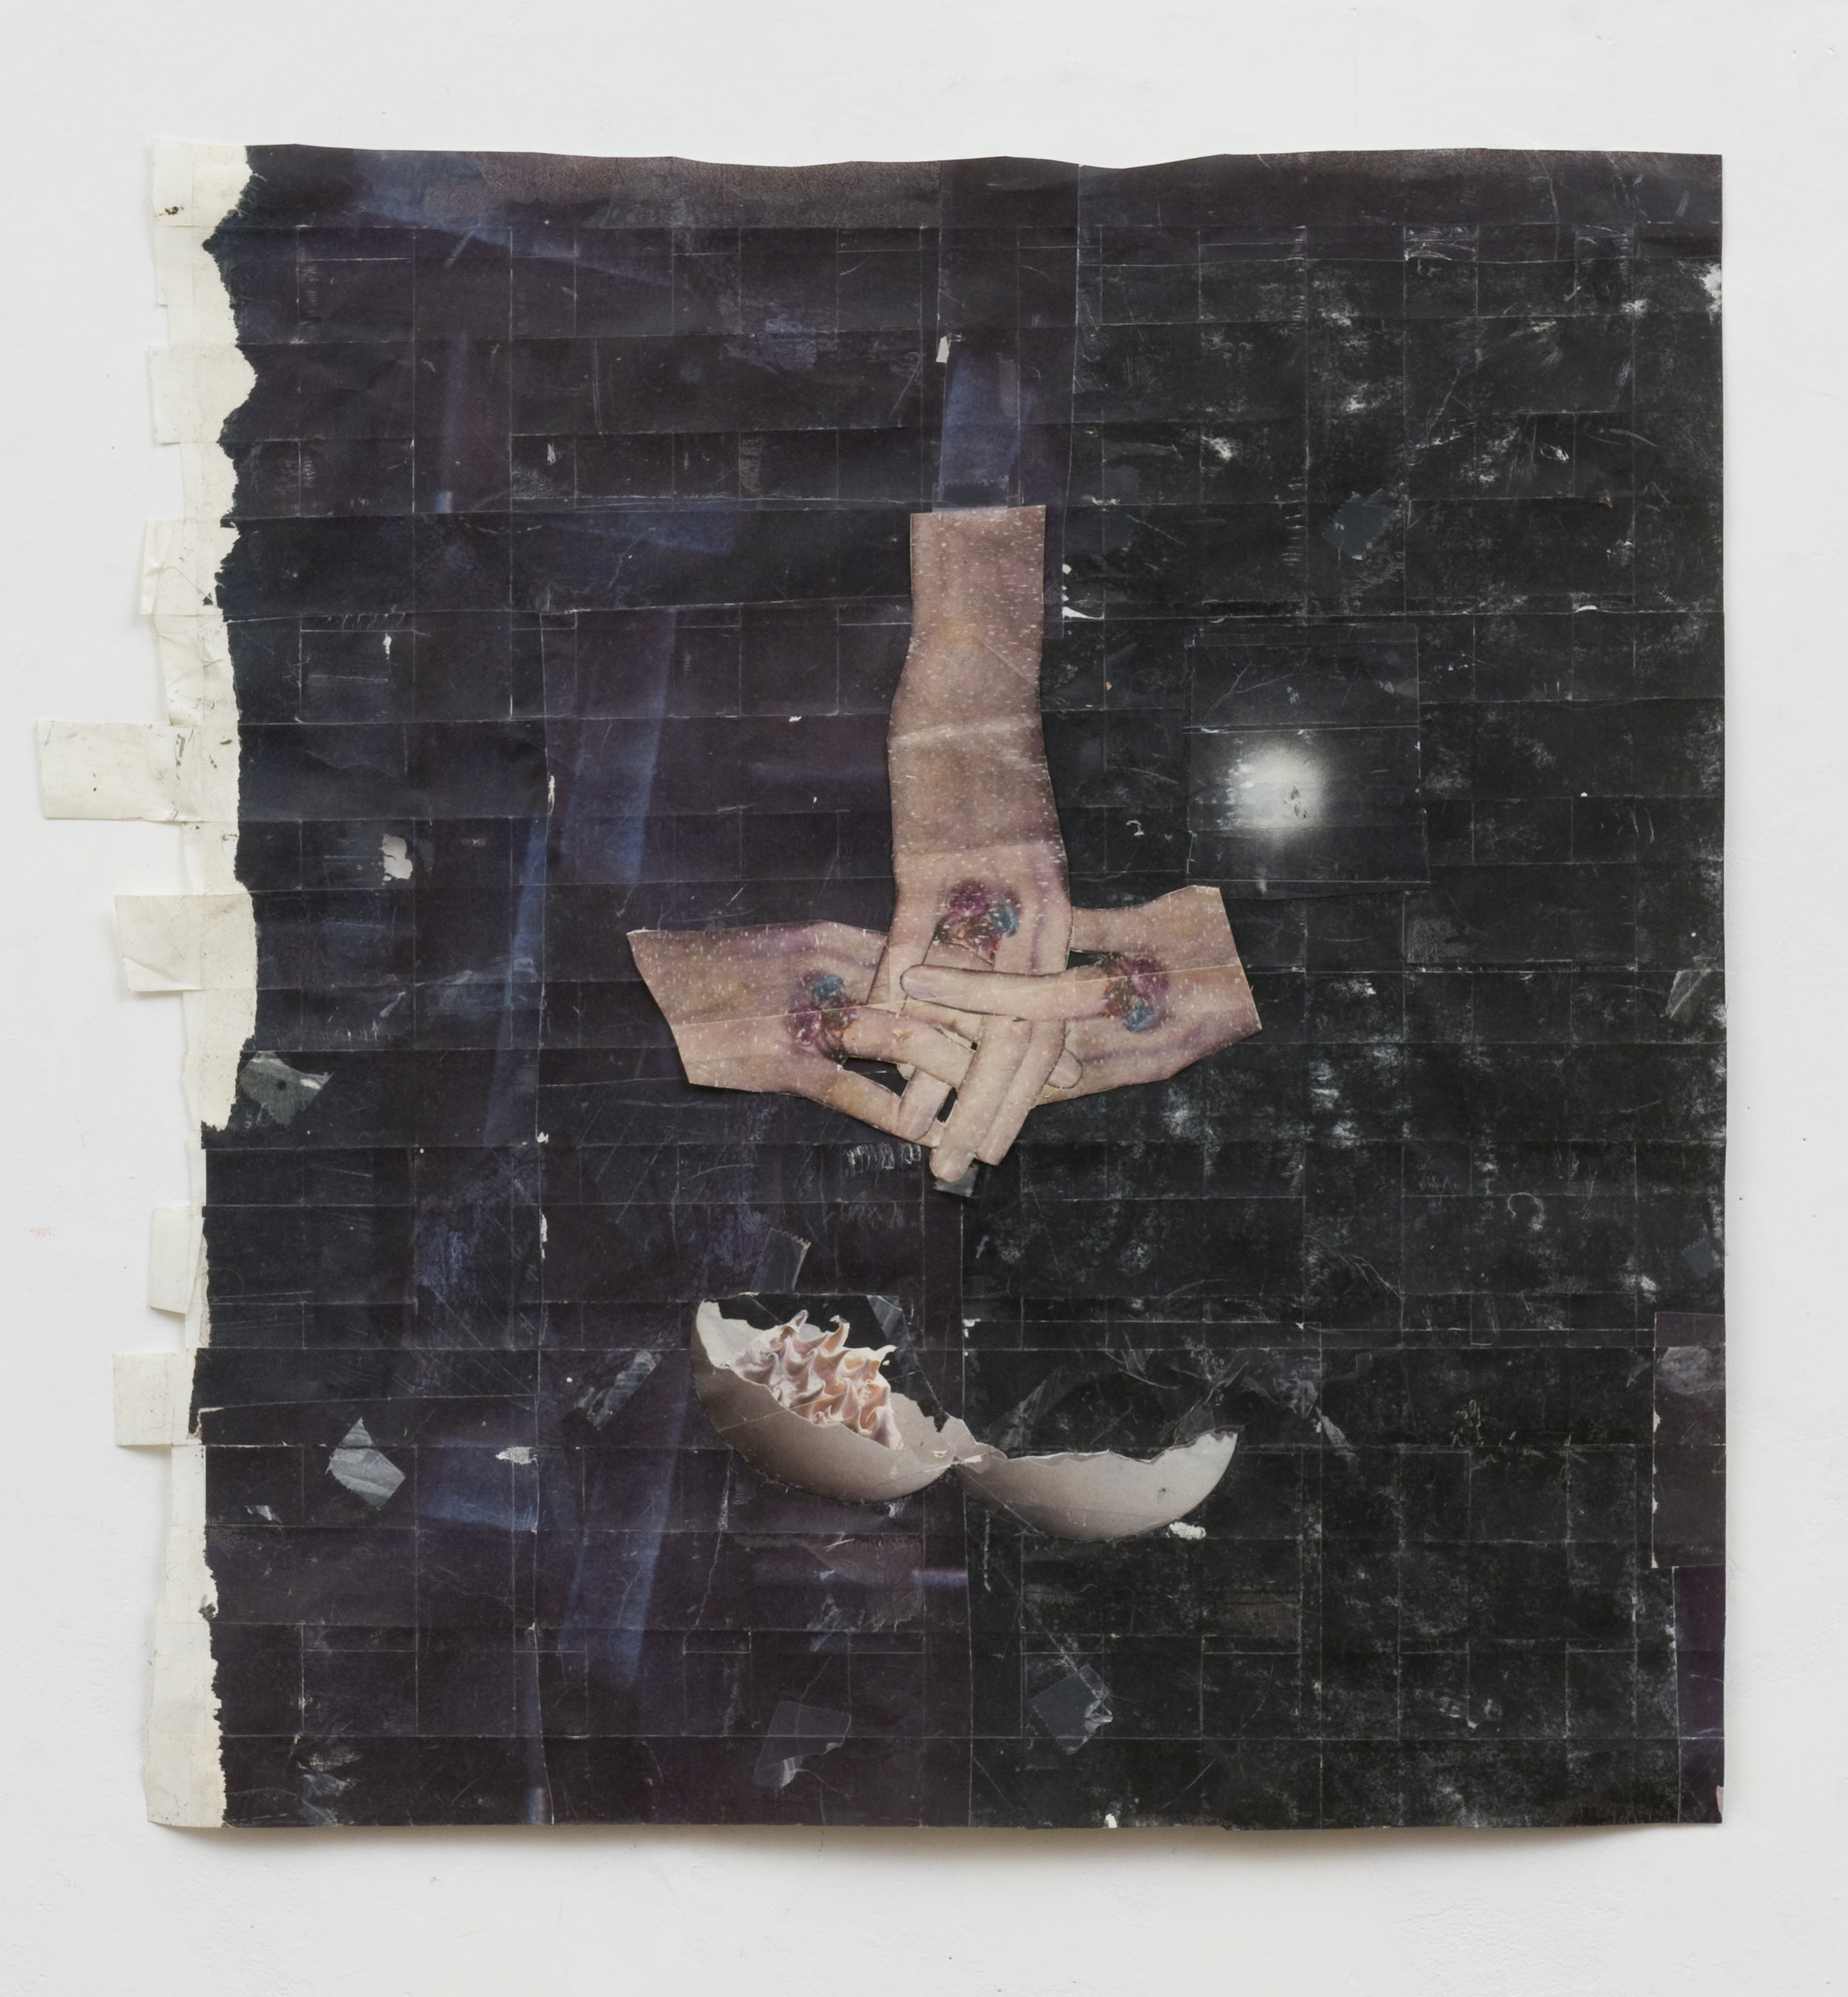 How Here is Here? , 2008 Magazine transferred onto tape, collage 17.5 x 16.5 inches